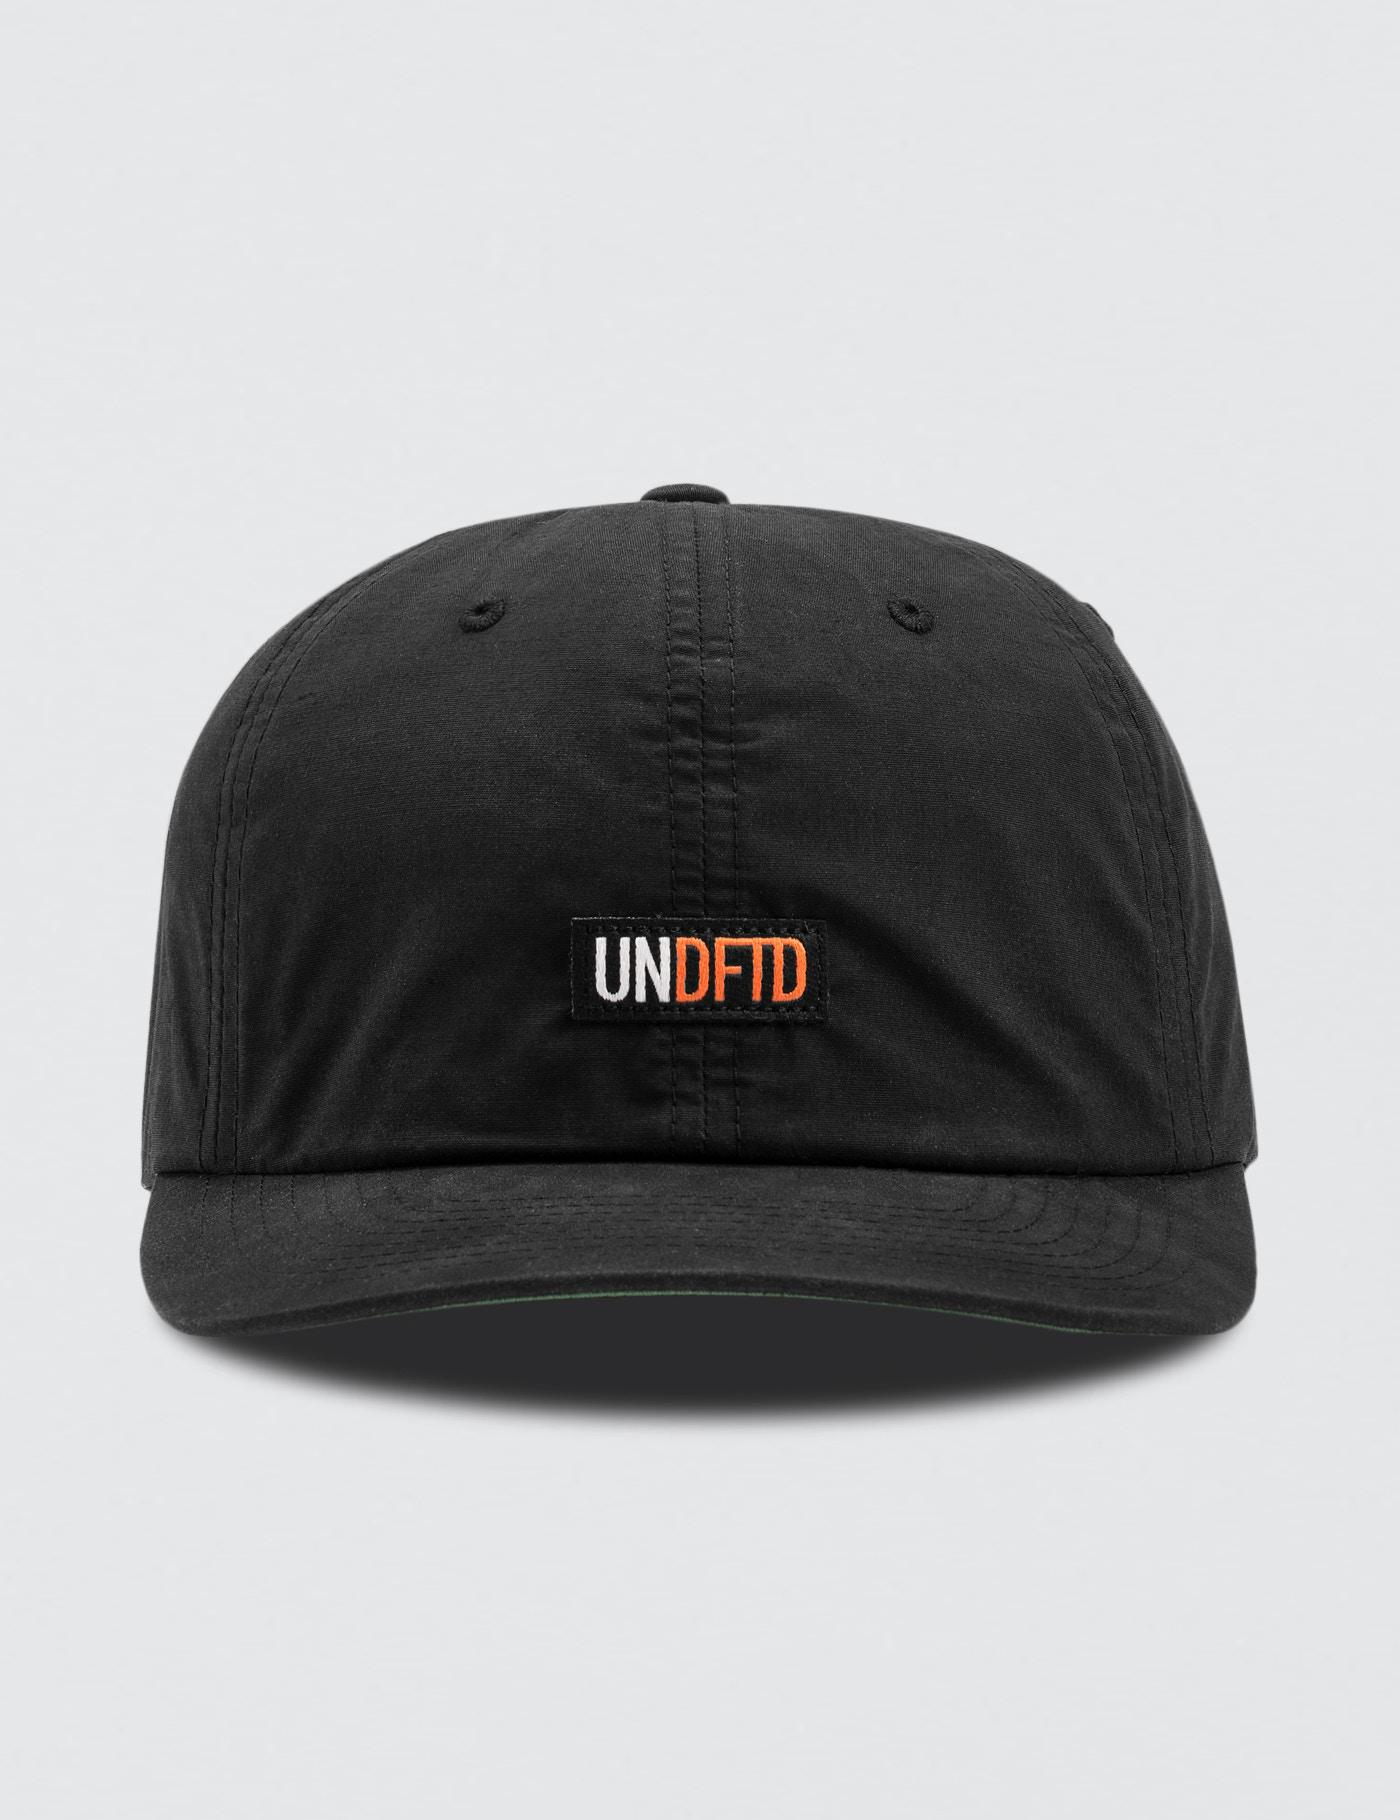 finest selection ccb2b aa3ec Lyst - Undefeated Label Cap in Black for Men